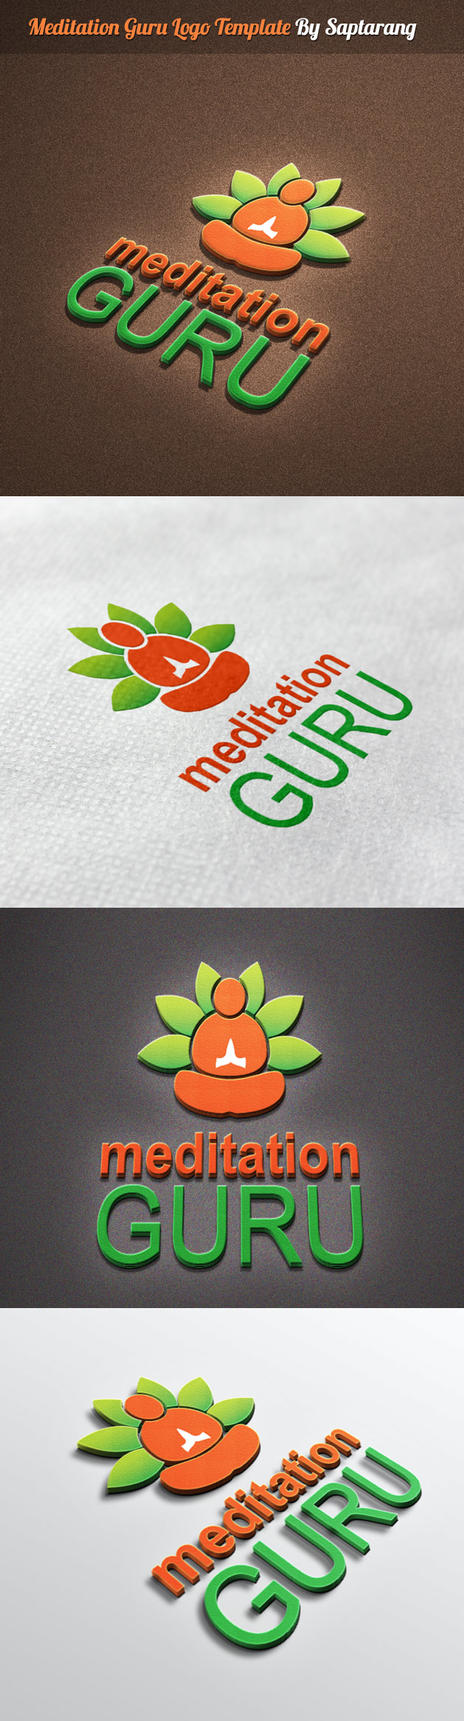 Meditation Guru Logo Template by Saptarang